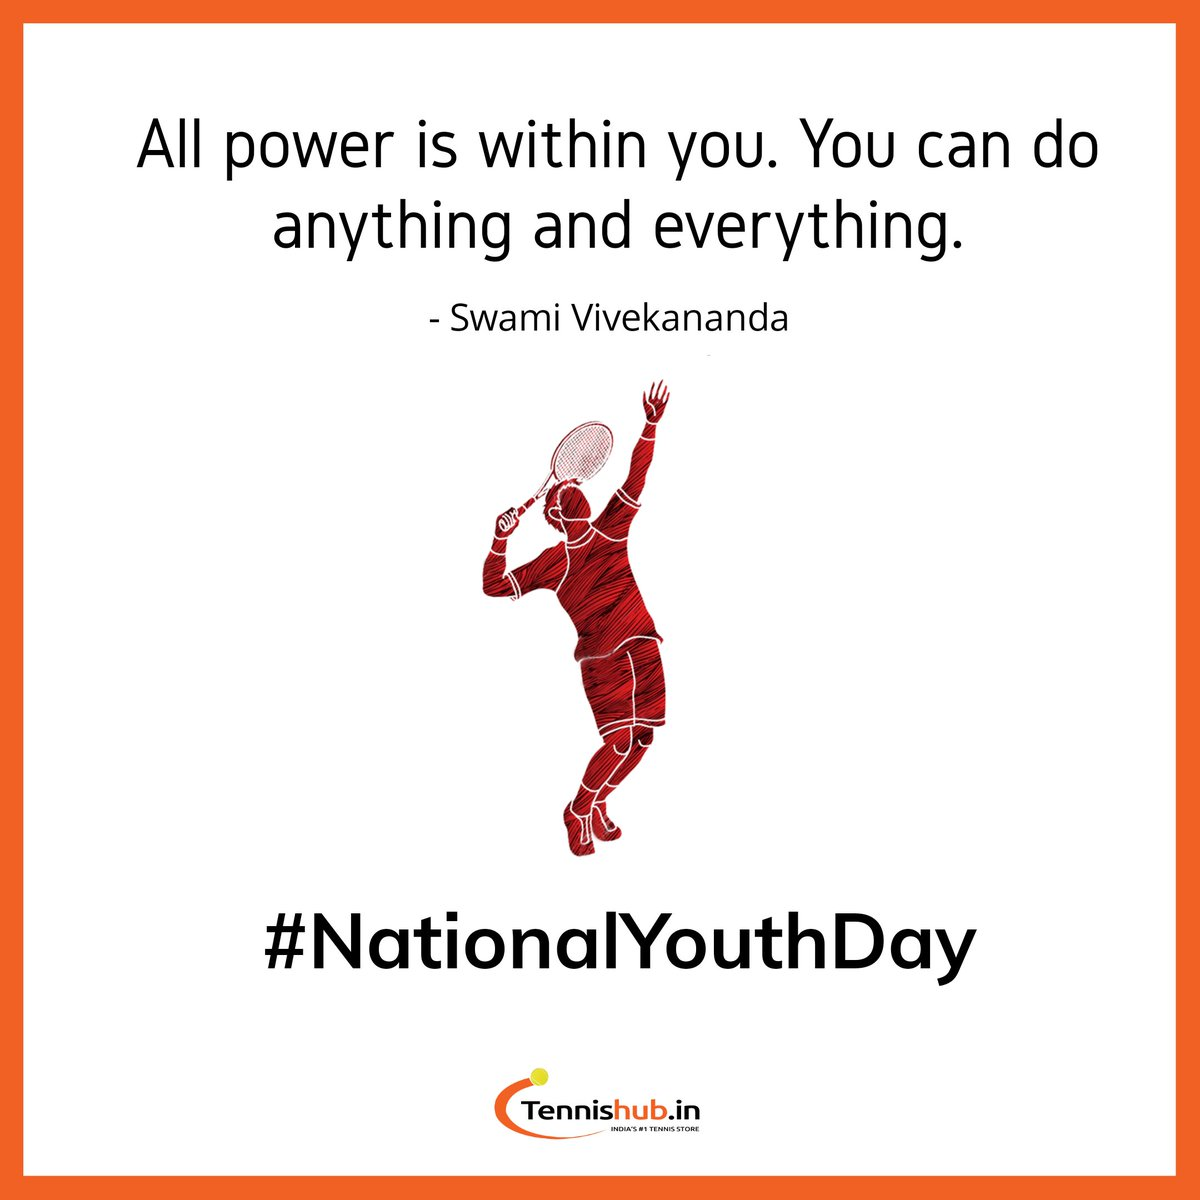 Paying tributes to Swami Vivekananda whose birth anniversary is celebrated as National Youth Day for his focus on youth.🇮🇳   #nationalyouthday #swamivivekananda #indiansports  #indiasports #Tennis